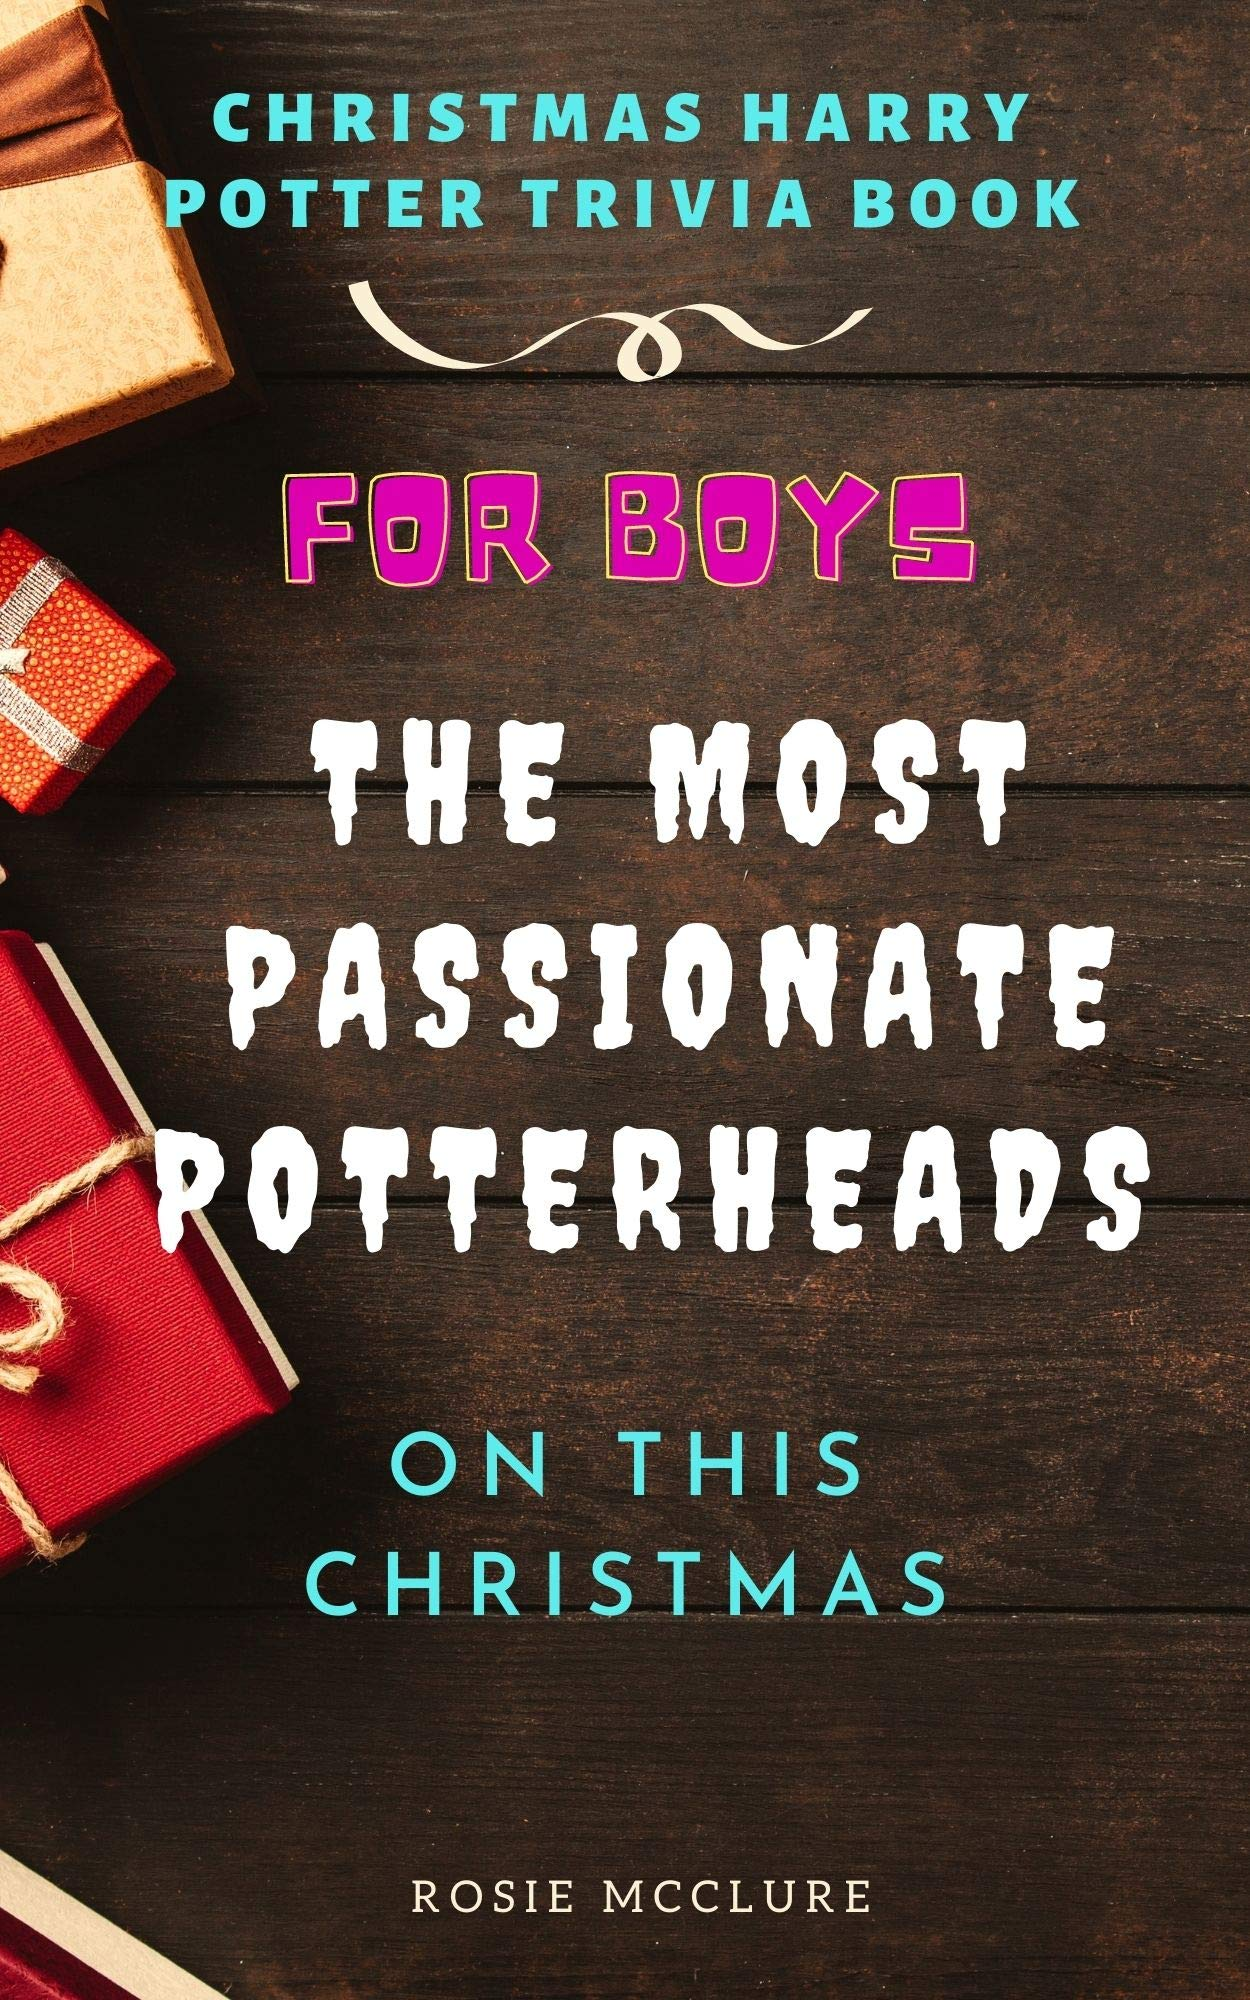 For boys - the most passionate Potterheads ON THIS cHRISTMAS: Christmas Harry Potter trivia book